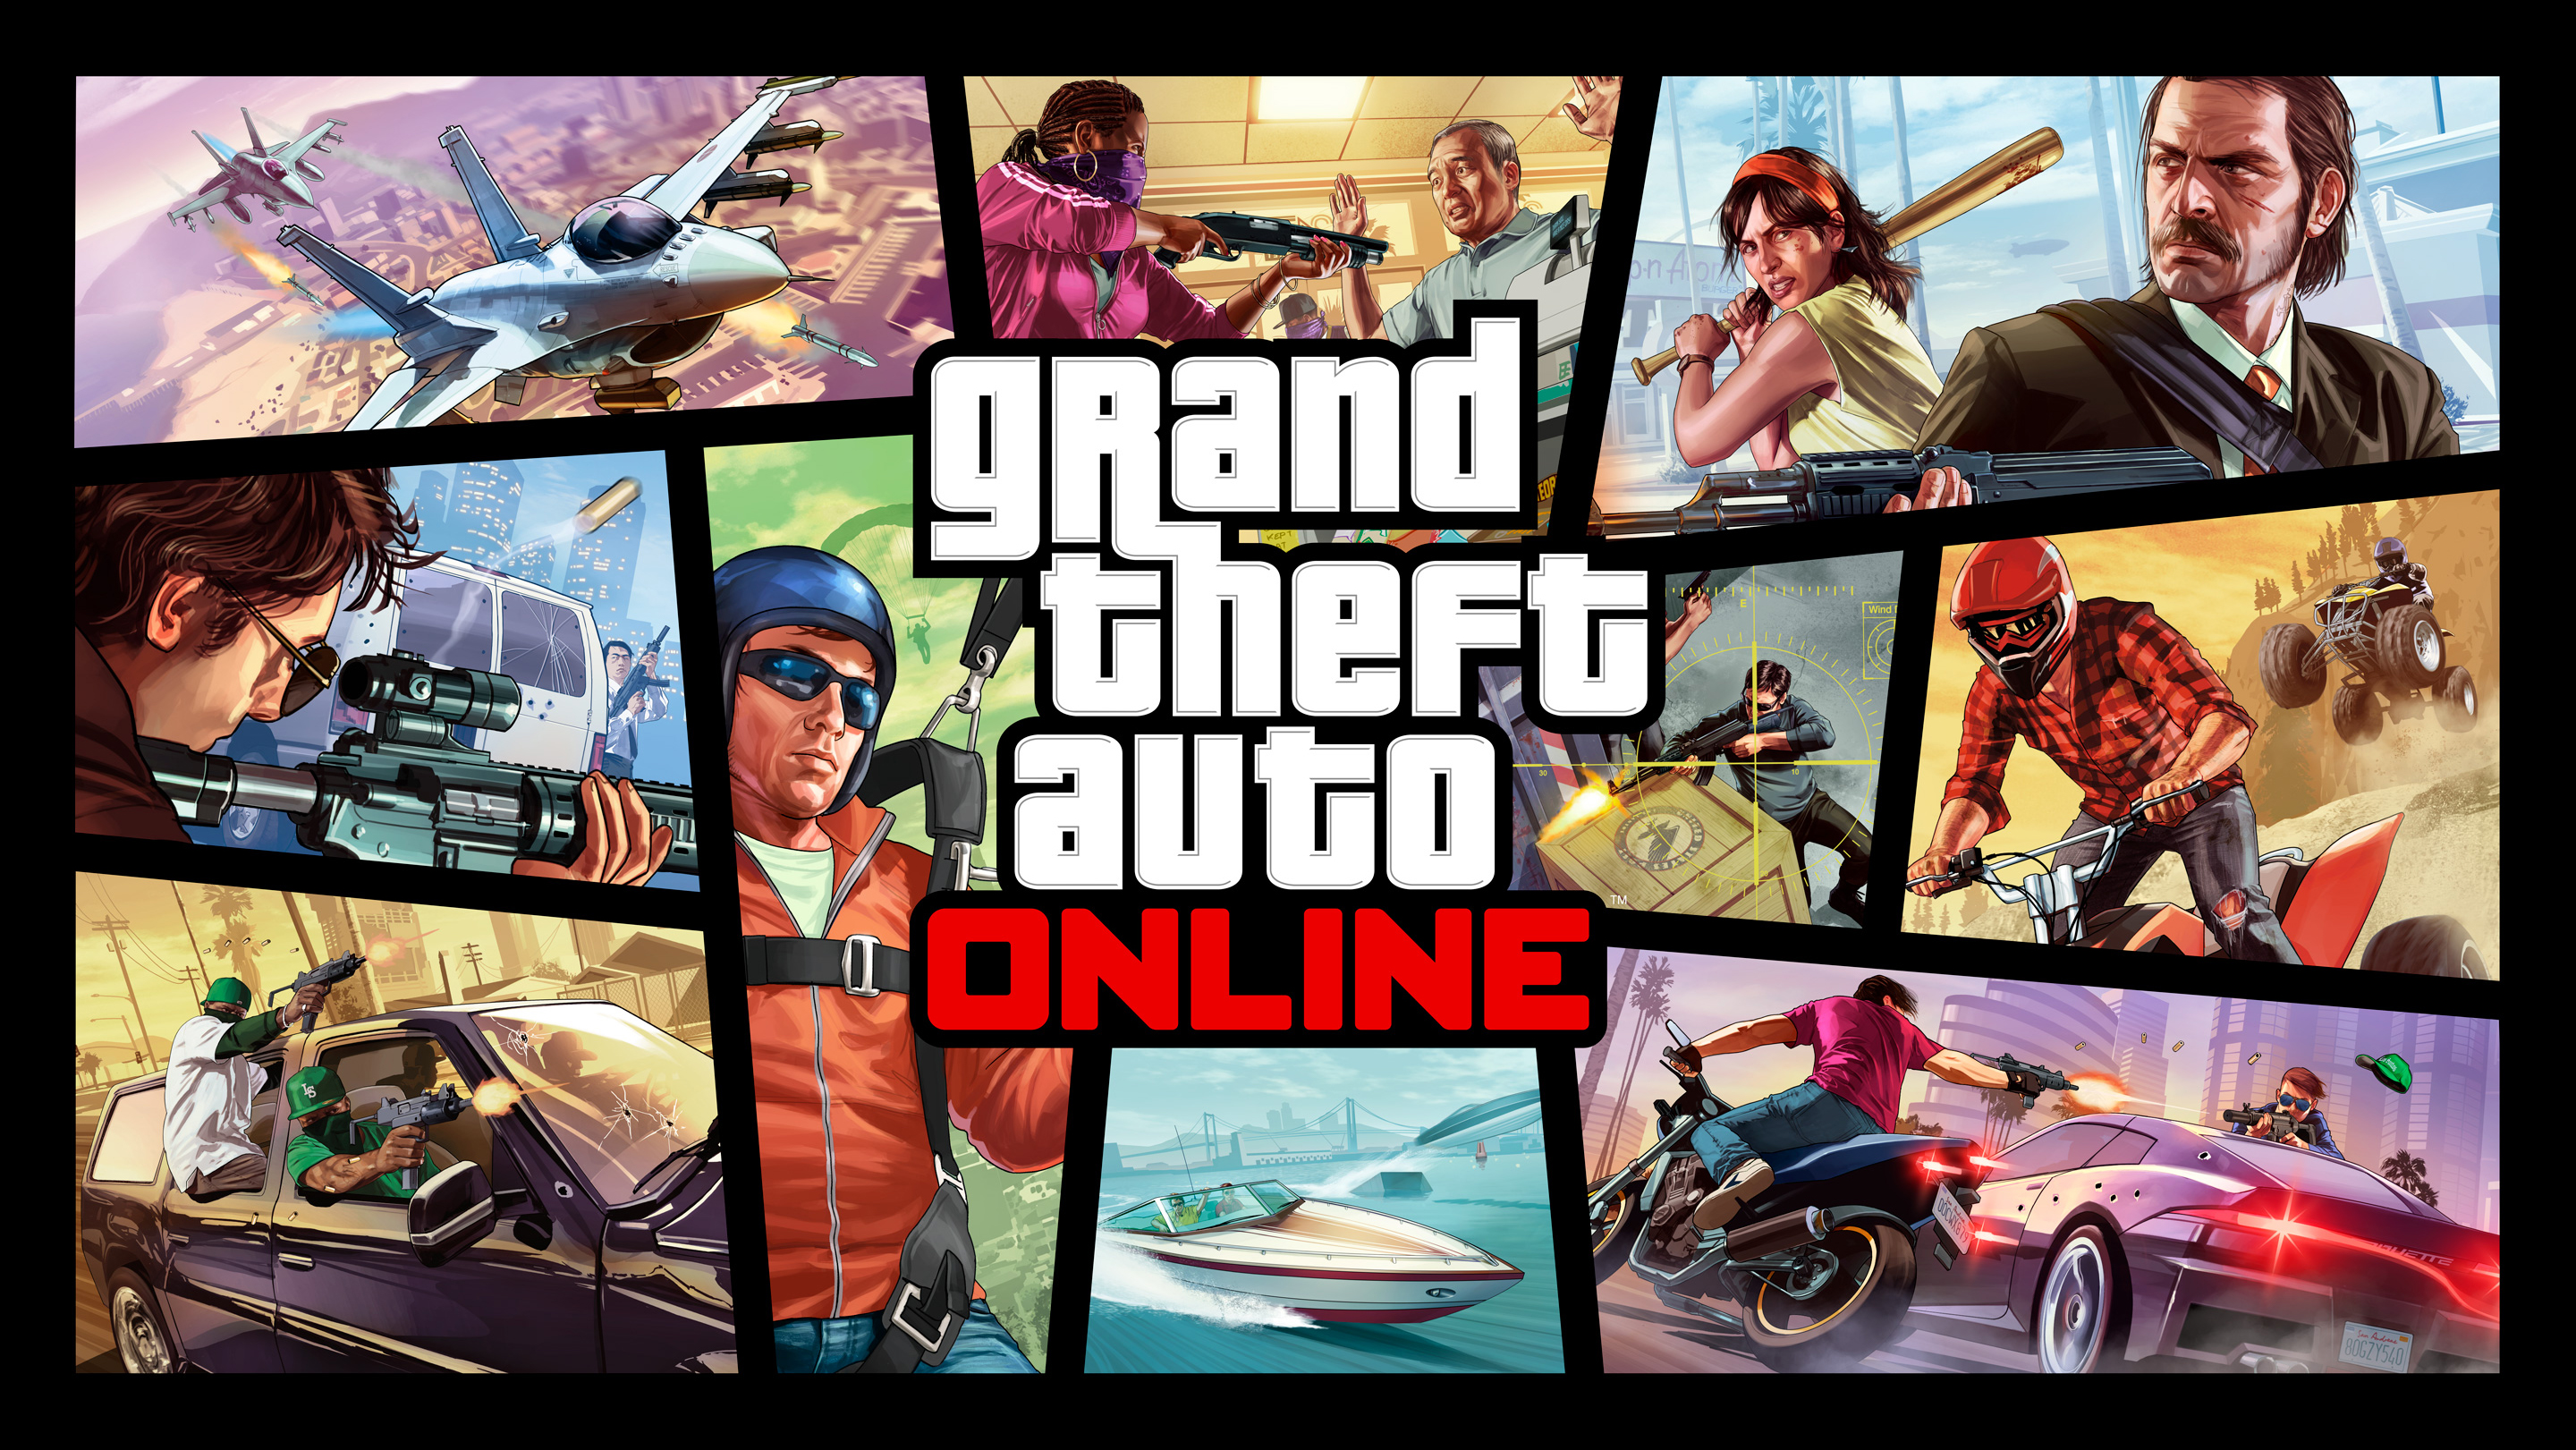 File:Artwork-GTA Online.jpg